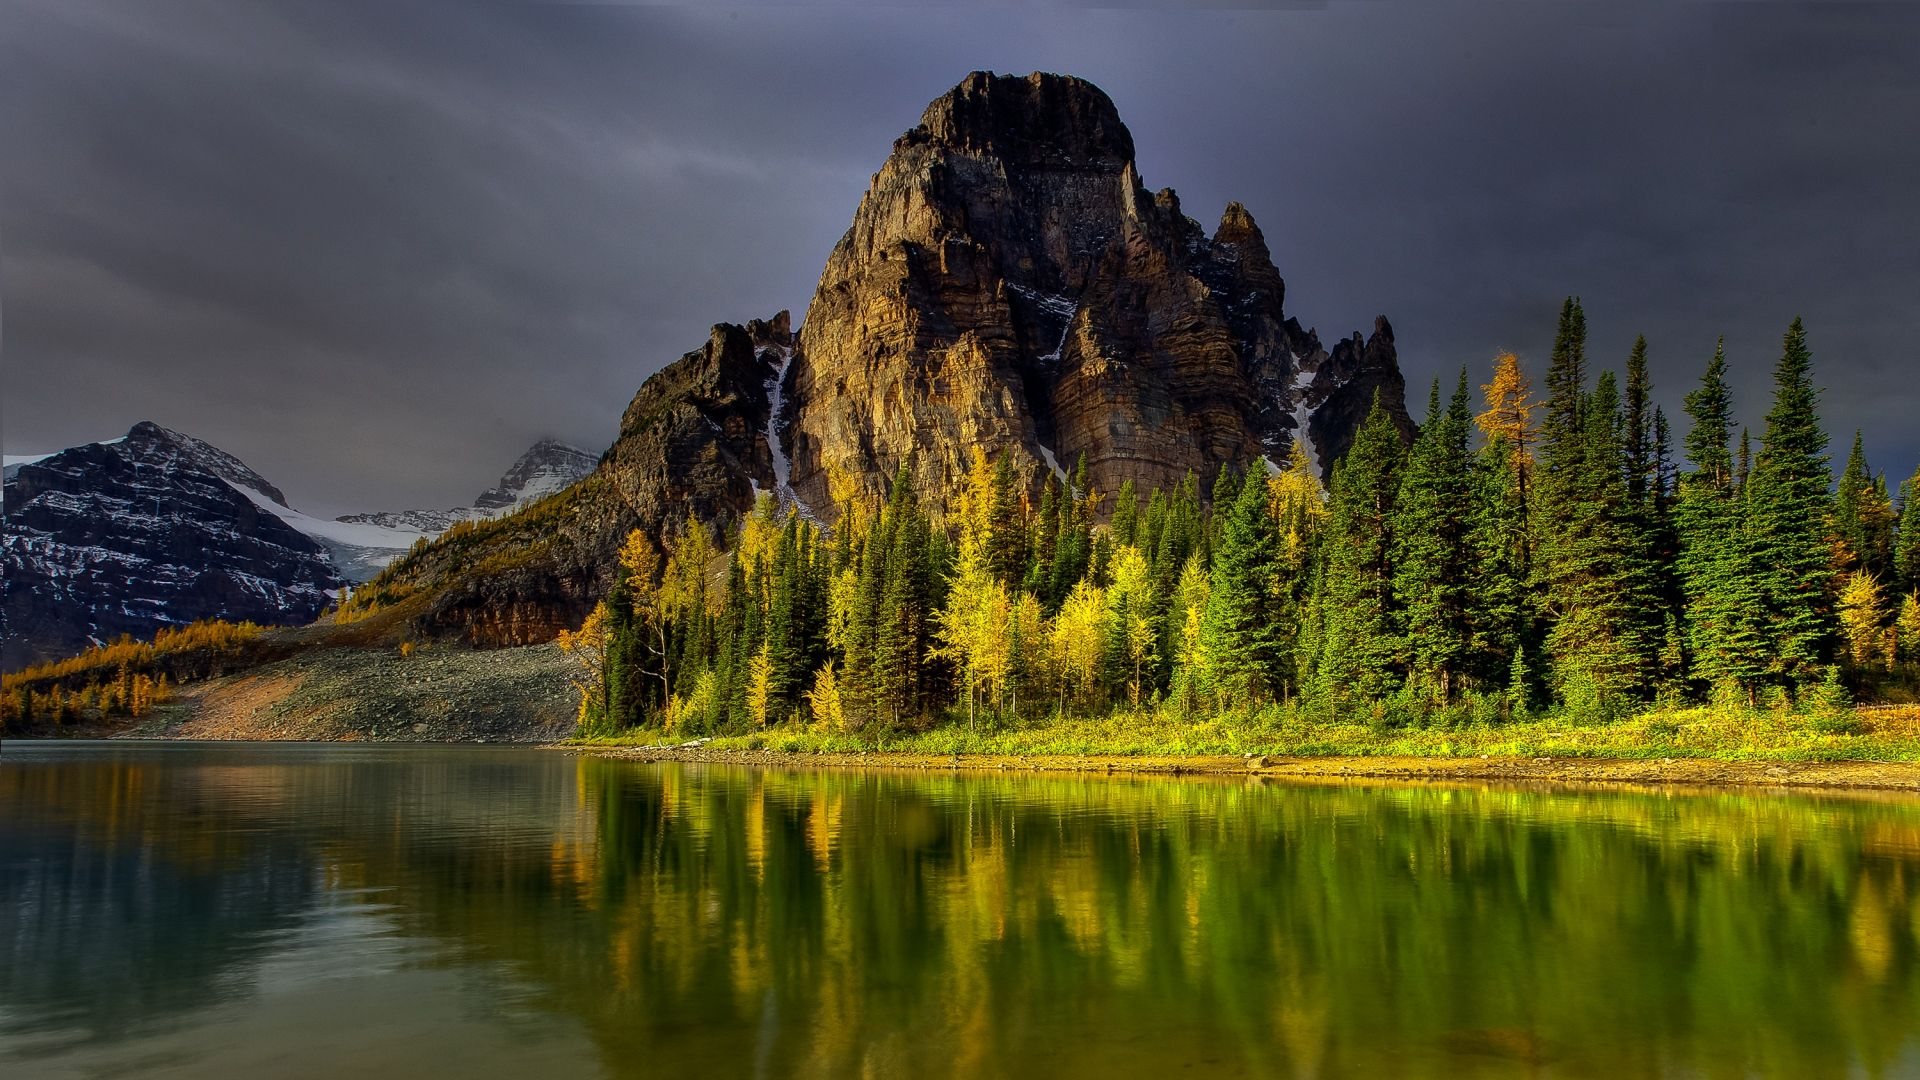 Download Wallpaper Mountains Sky Nature Lake Full HD